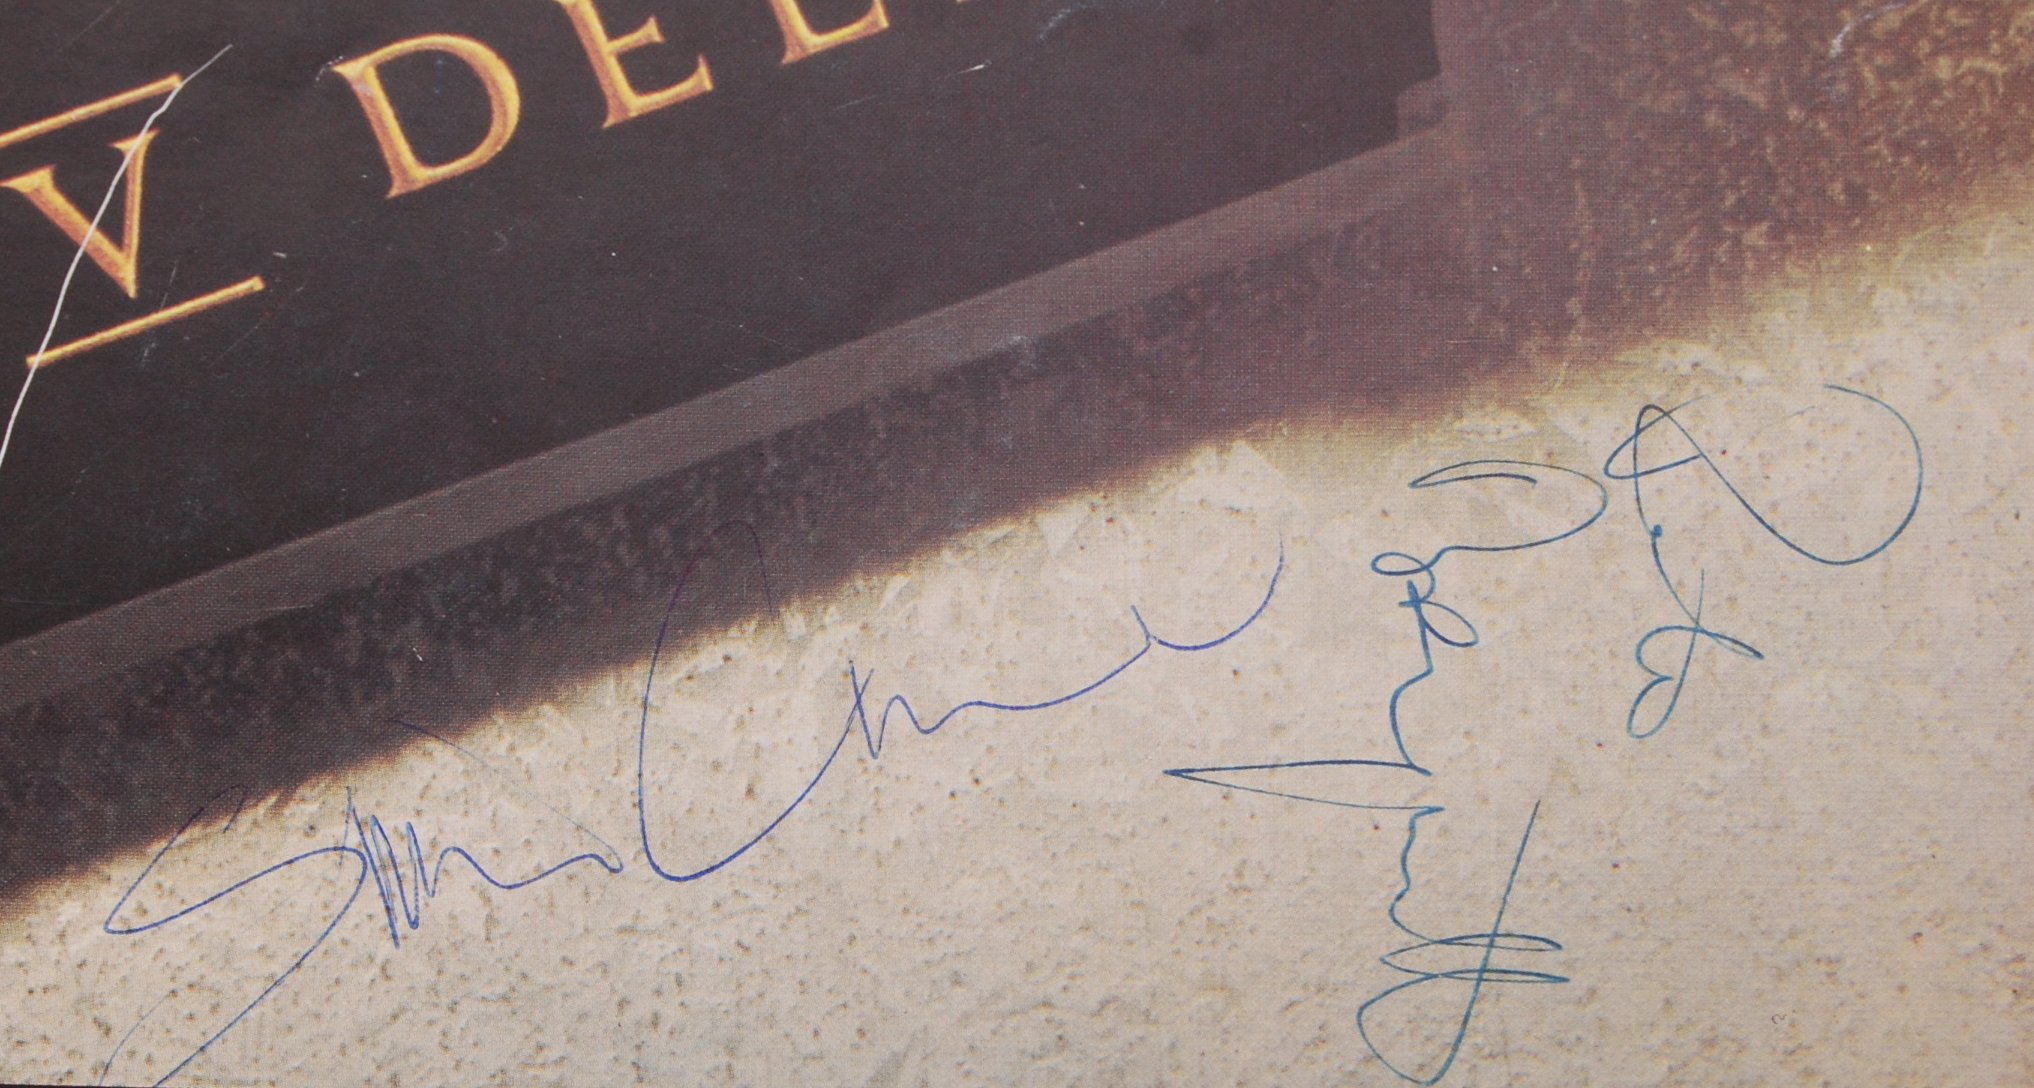 ORIGINAL ' THE BOOMTOWN RATS ' AUTOGRAPHED TOUR BR - Image 3 of 3